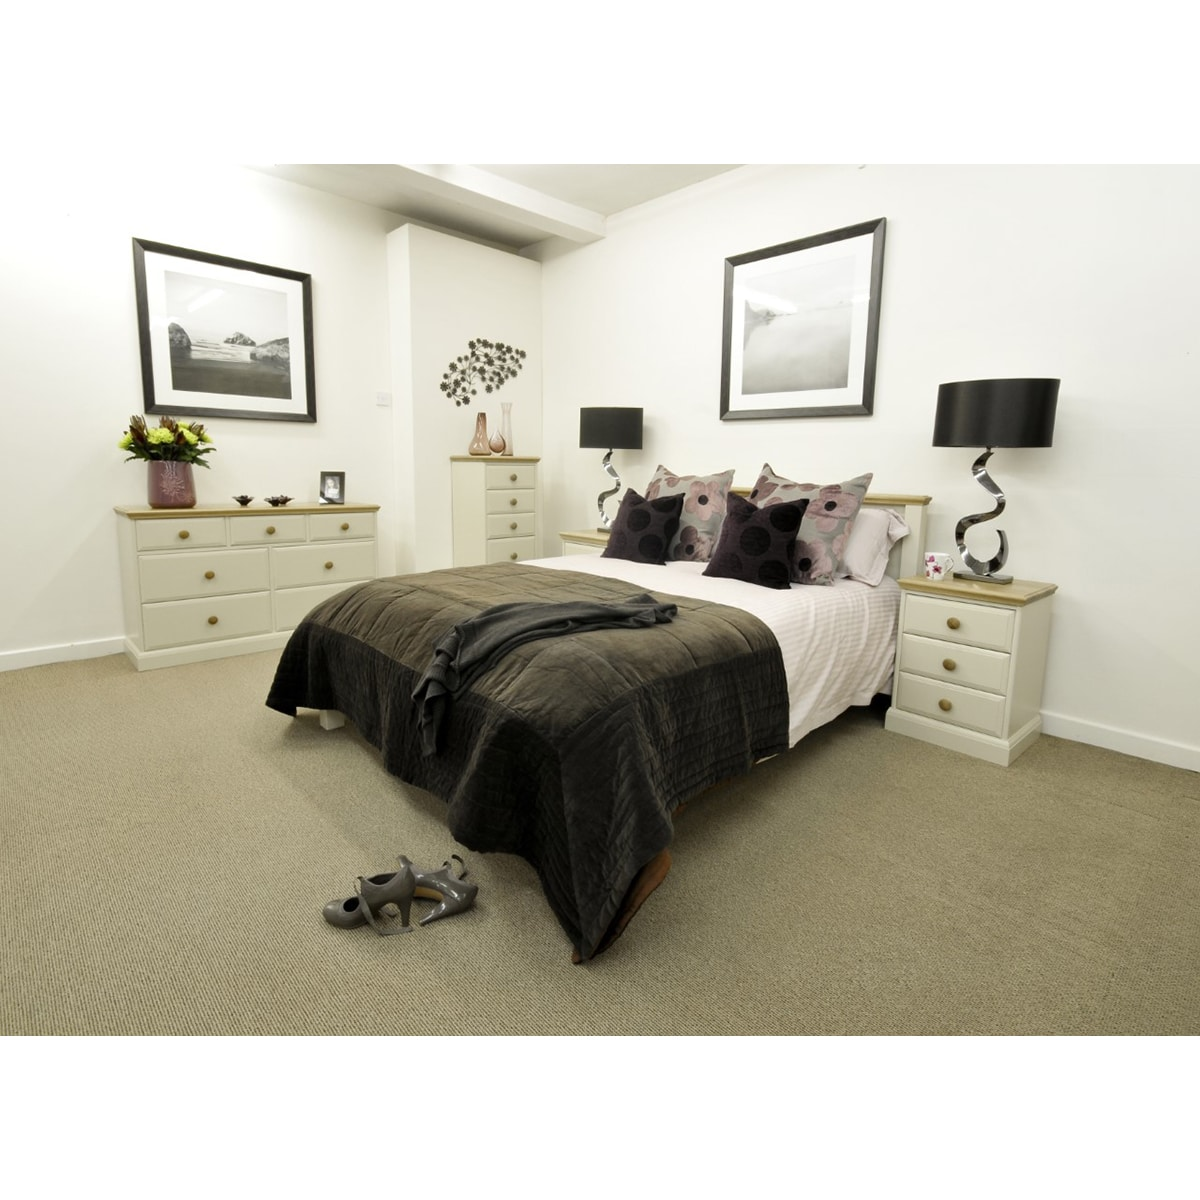 New england 4 6 double bed furniture and mirror for New england bedroom